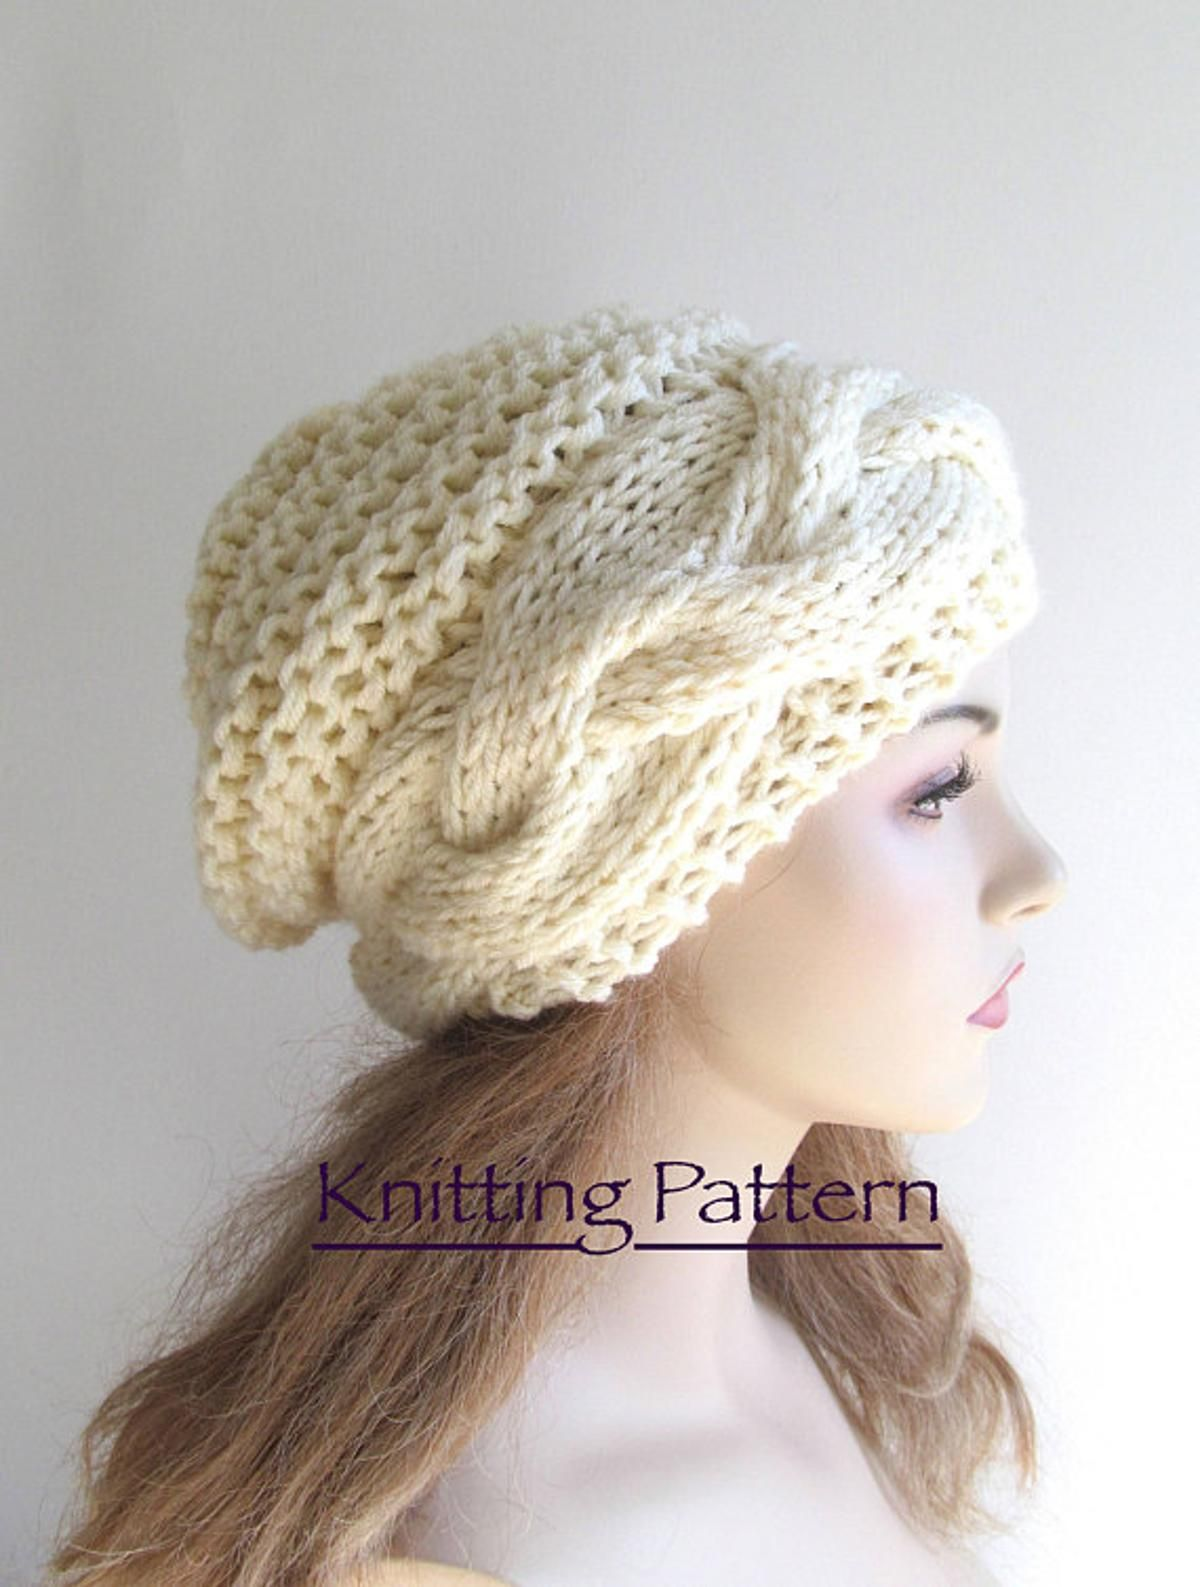 Braided Cable Slouchy Beanie Hat Knitting Pattern | Gorros ...